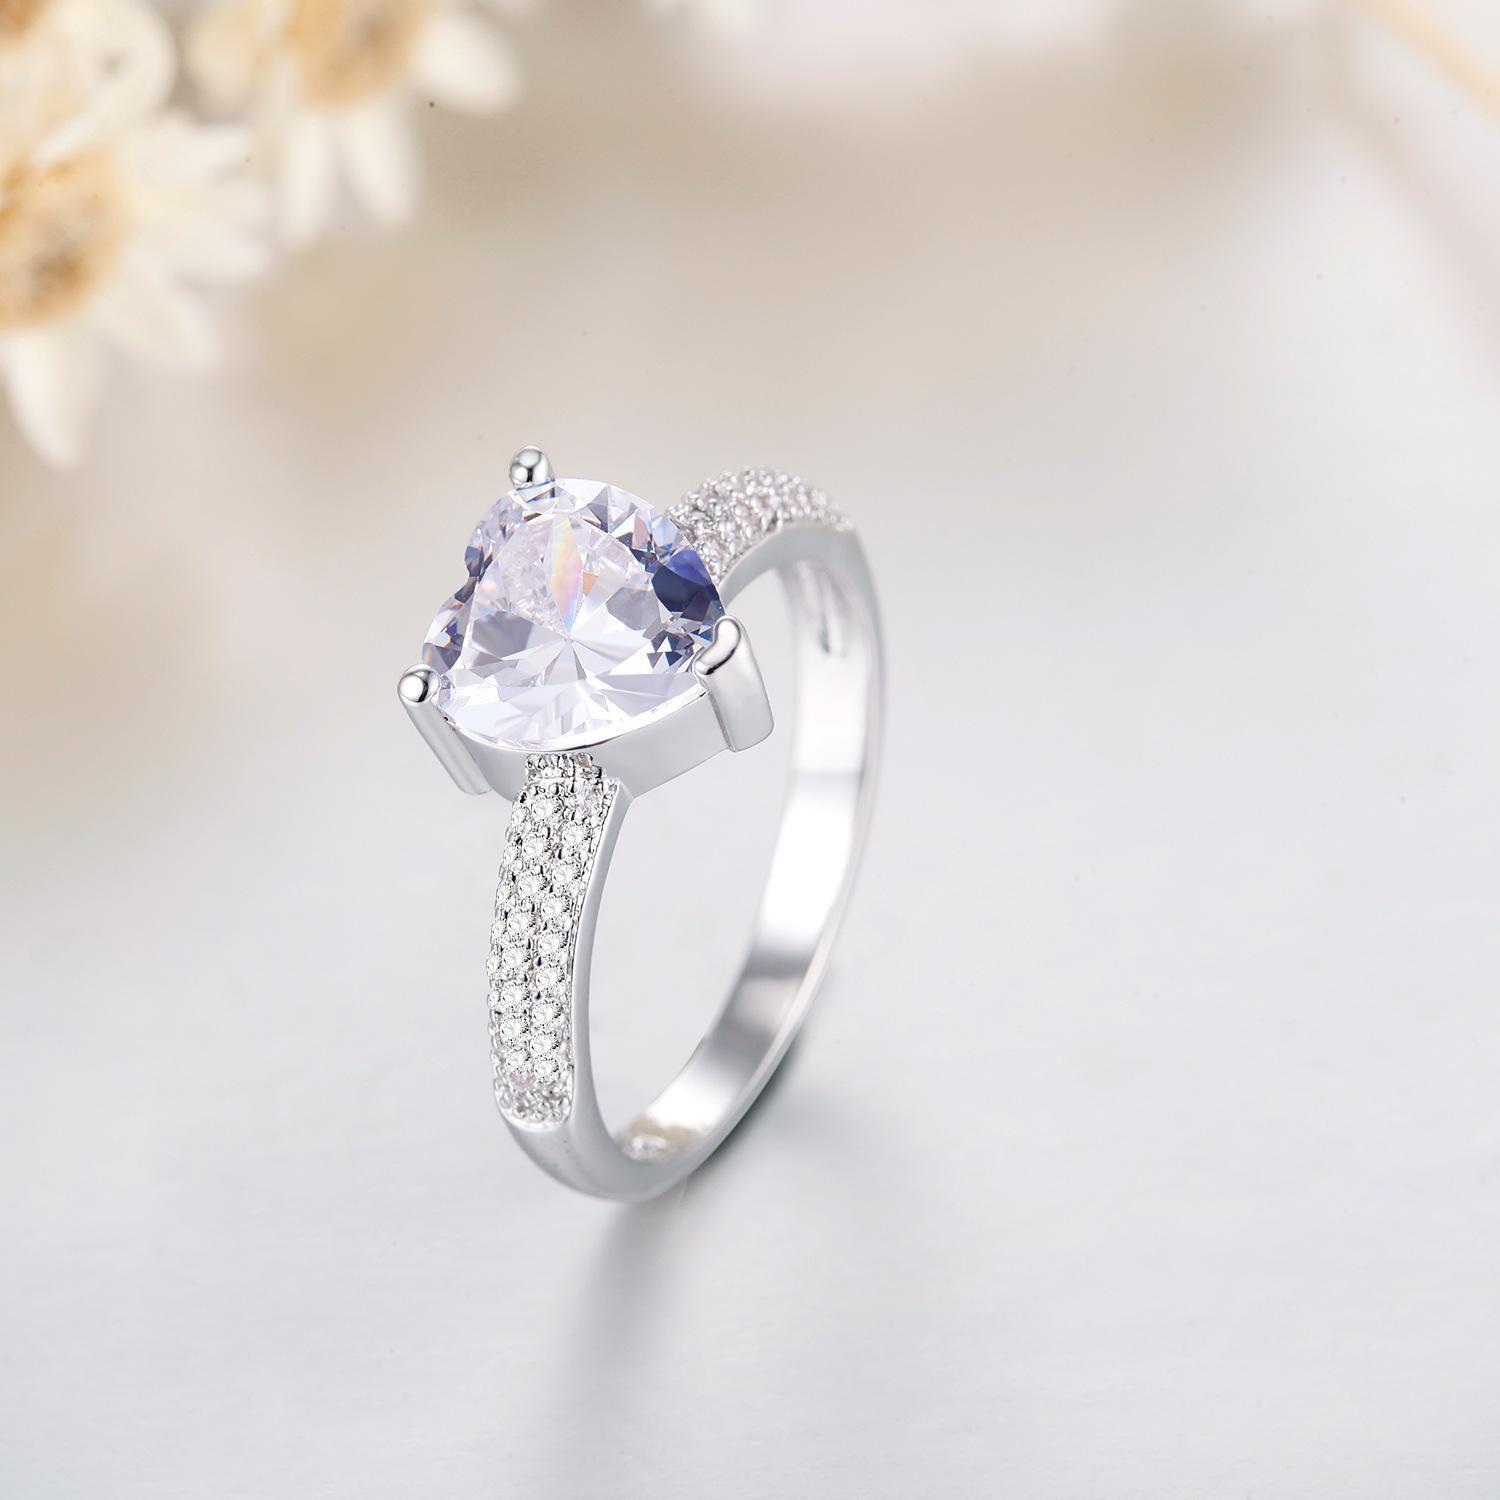 Fashion-Hot Jewelry Female loves Ring woman S925 silver Crystal white color exquisiteMicro Square crystal Exquisite Lover Hand Accessories